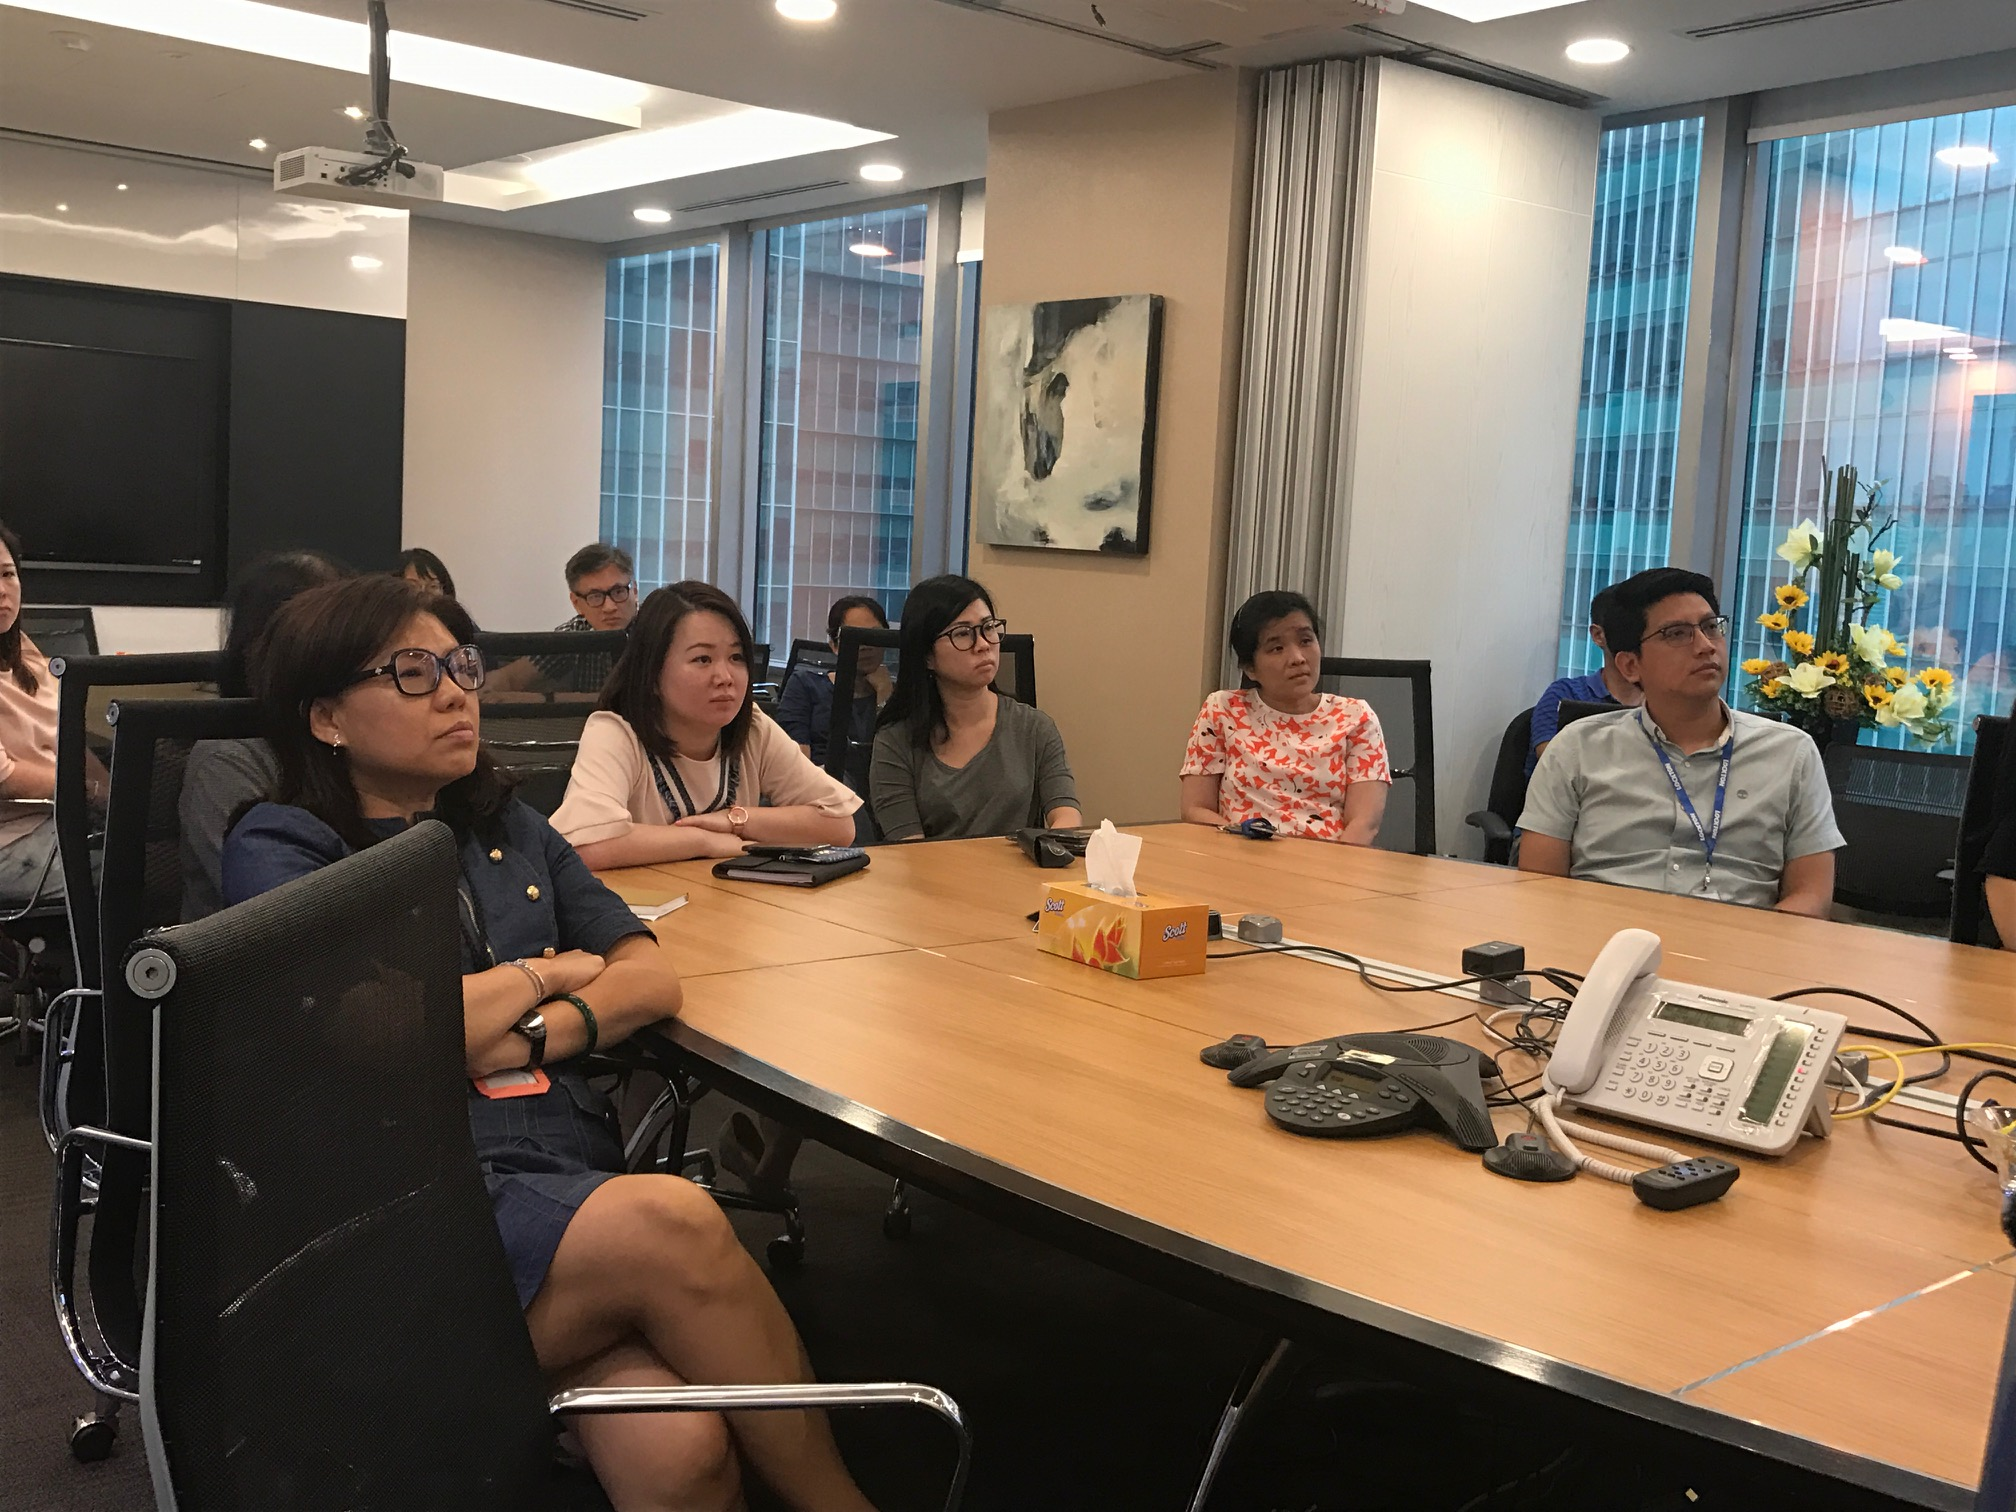 Staff from Lockton (Singapore) listening attentively to Dr Joy Chan as she conducted her talk on 3 August 2018